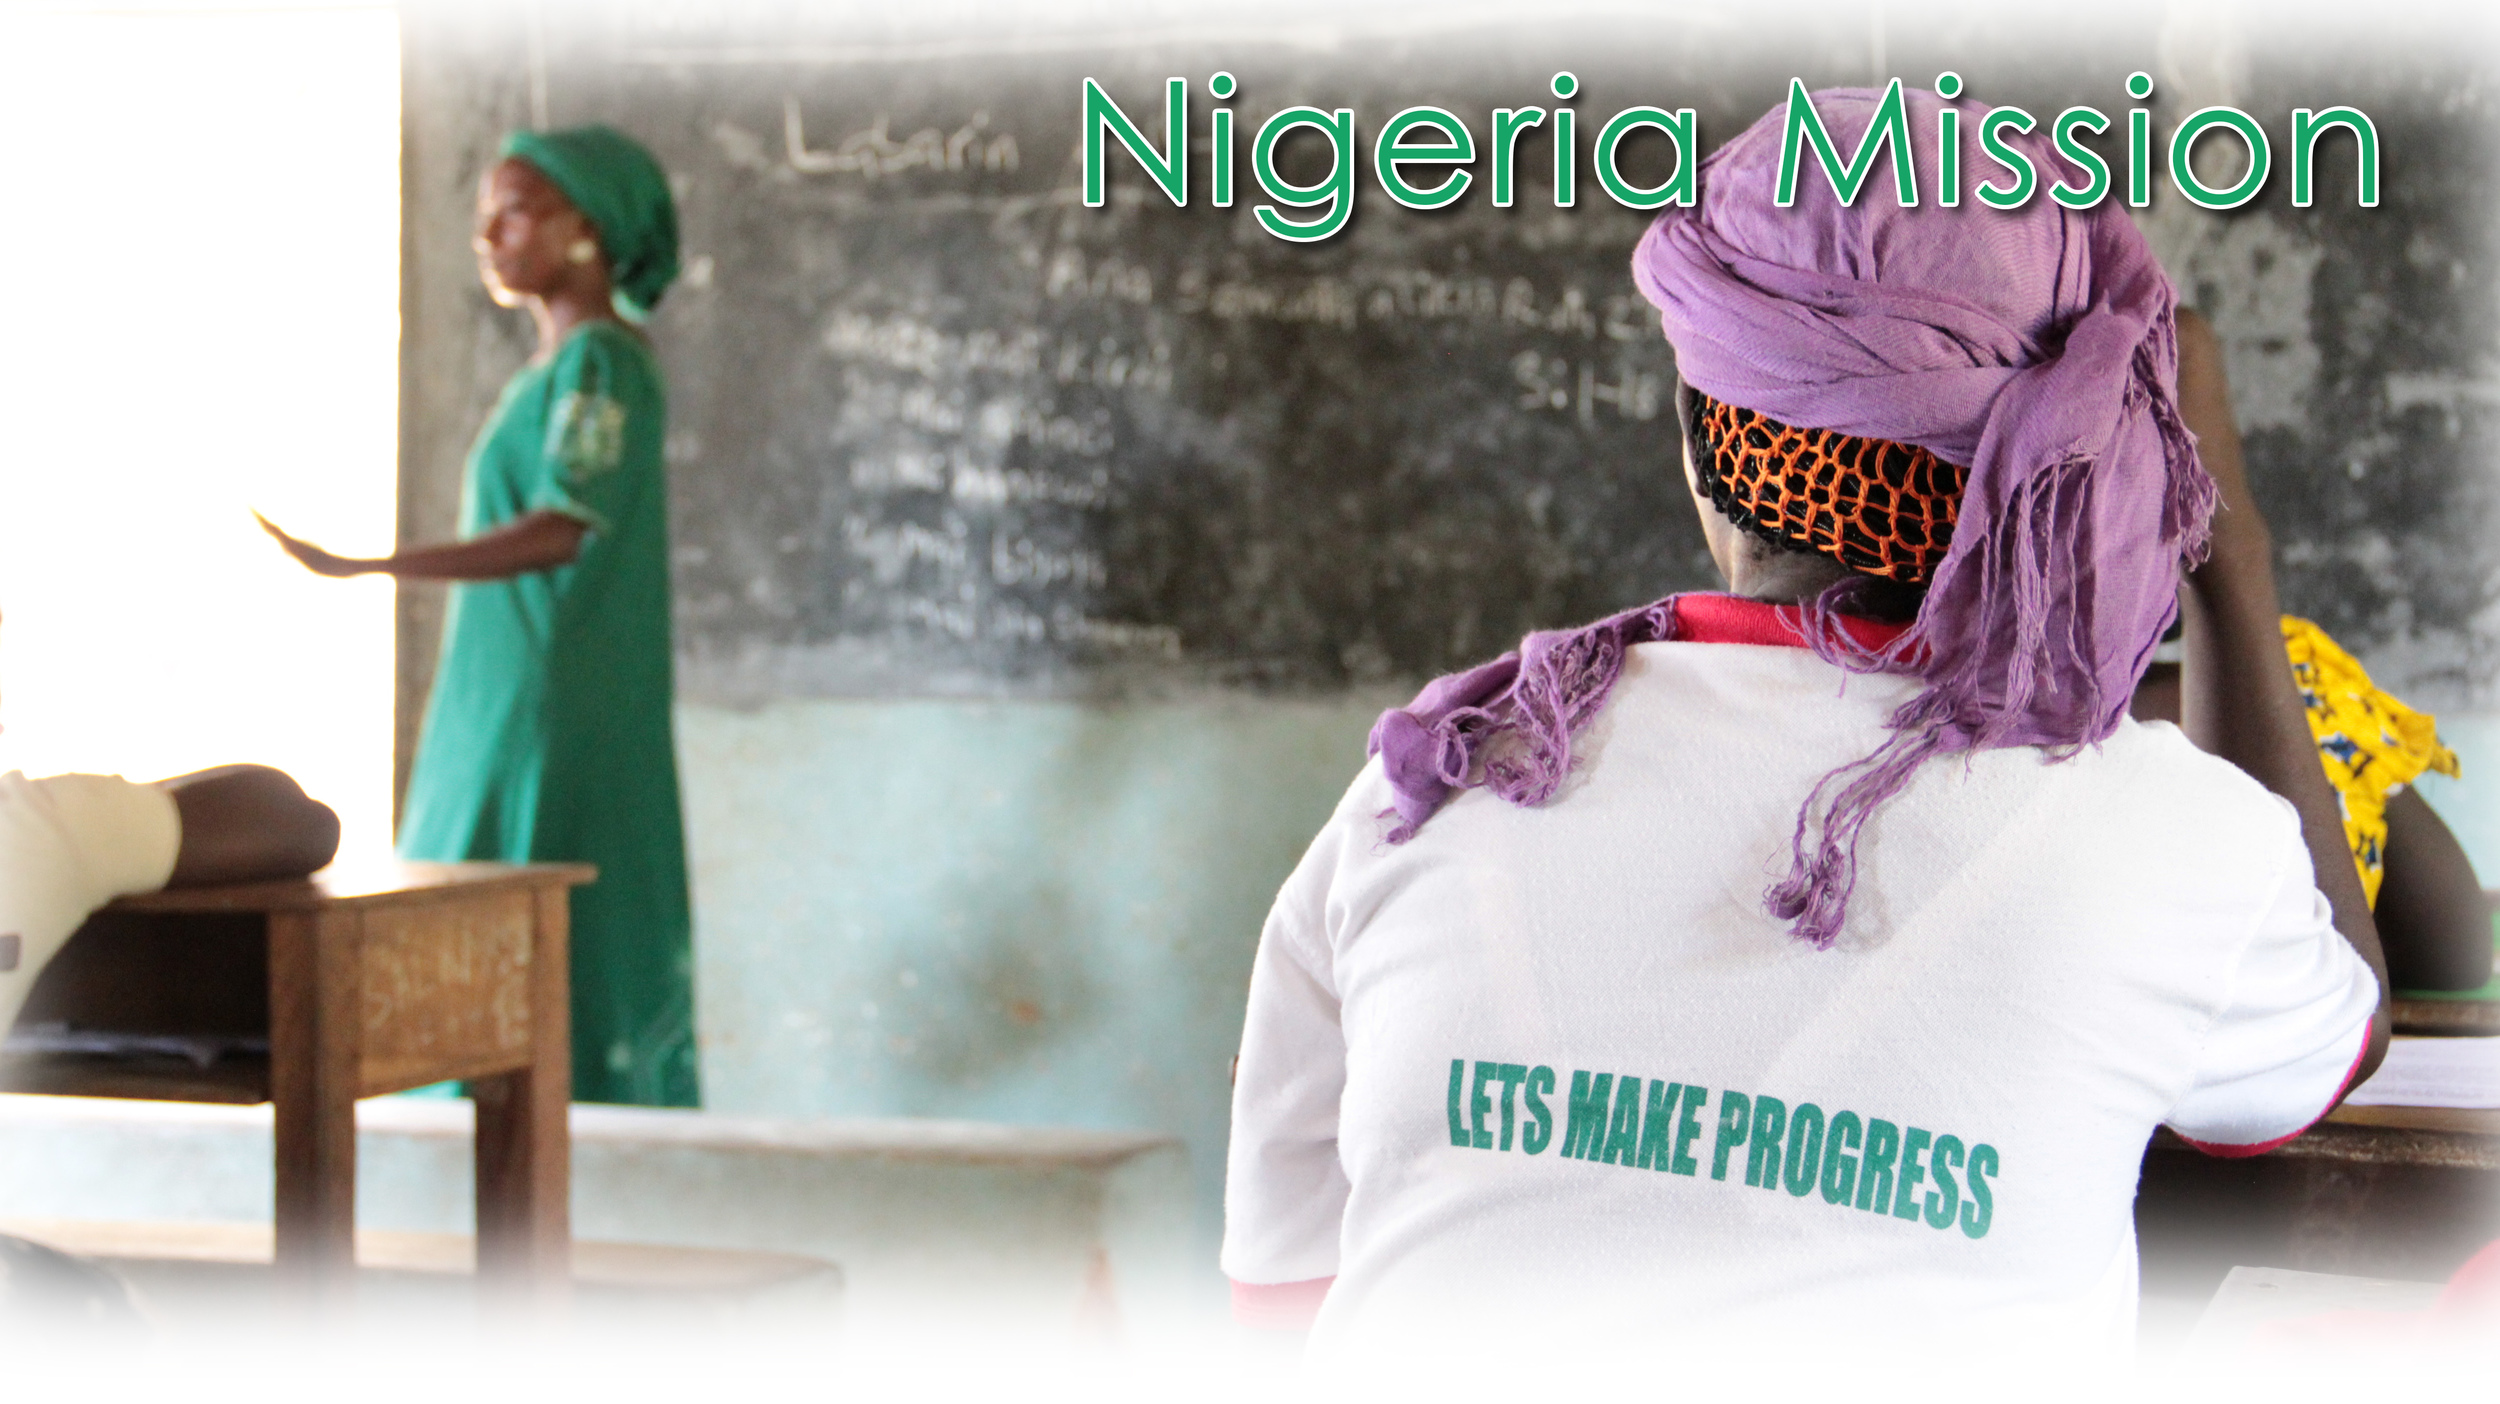 nigeria mission header.jpg